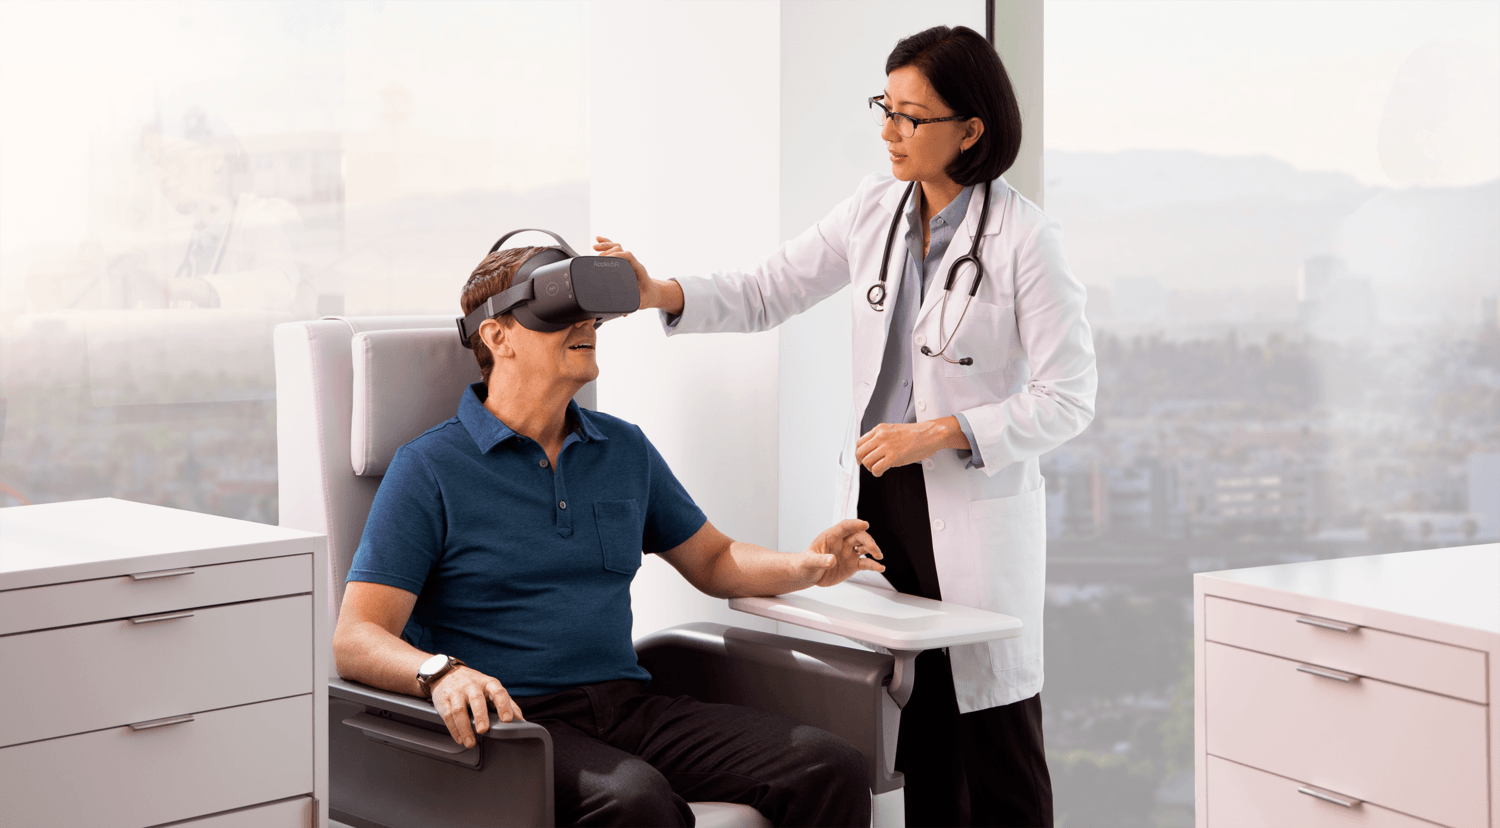 AppliedVR, NCI Partner to Evaluate VR As Therapy for Cancer-Related Anxiety AppliedVR Awarded $2.9M Grants to Study Virtual Reality As An Opioid-Sparing Treatment